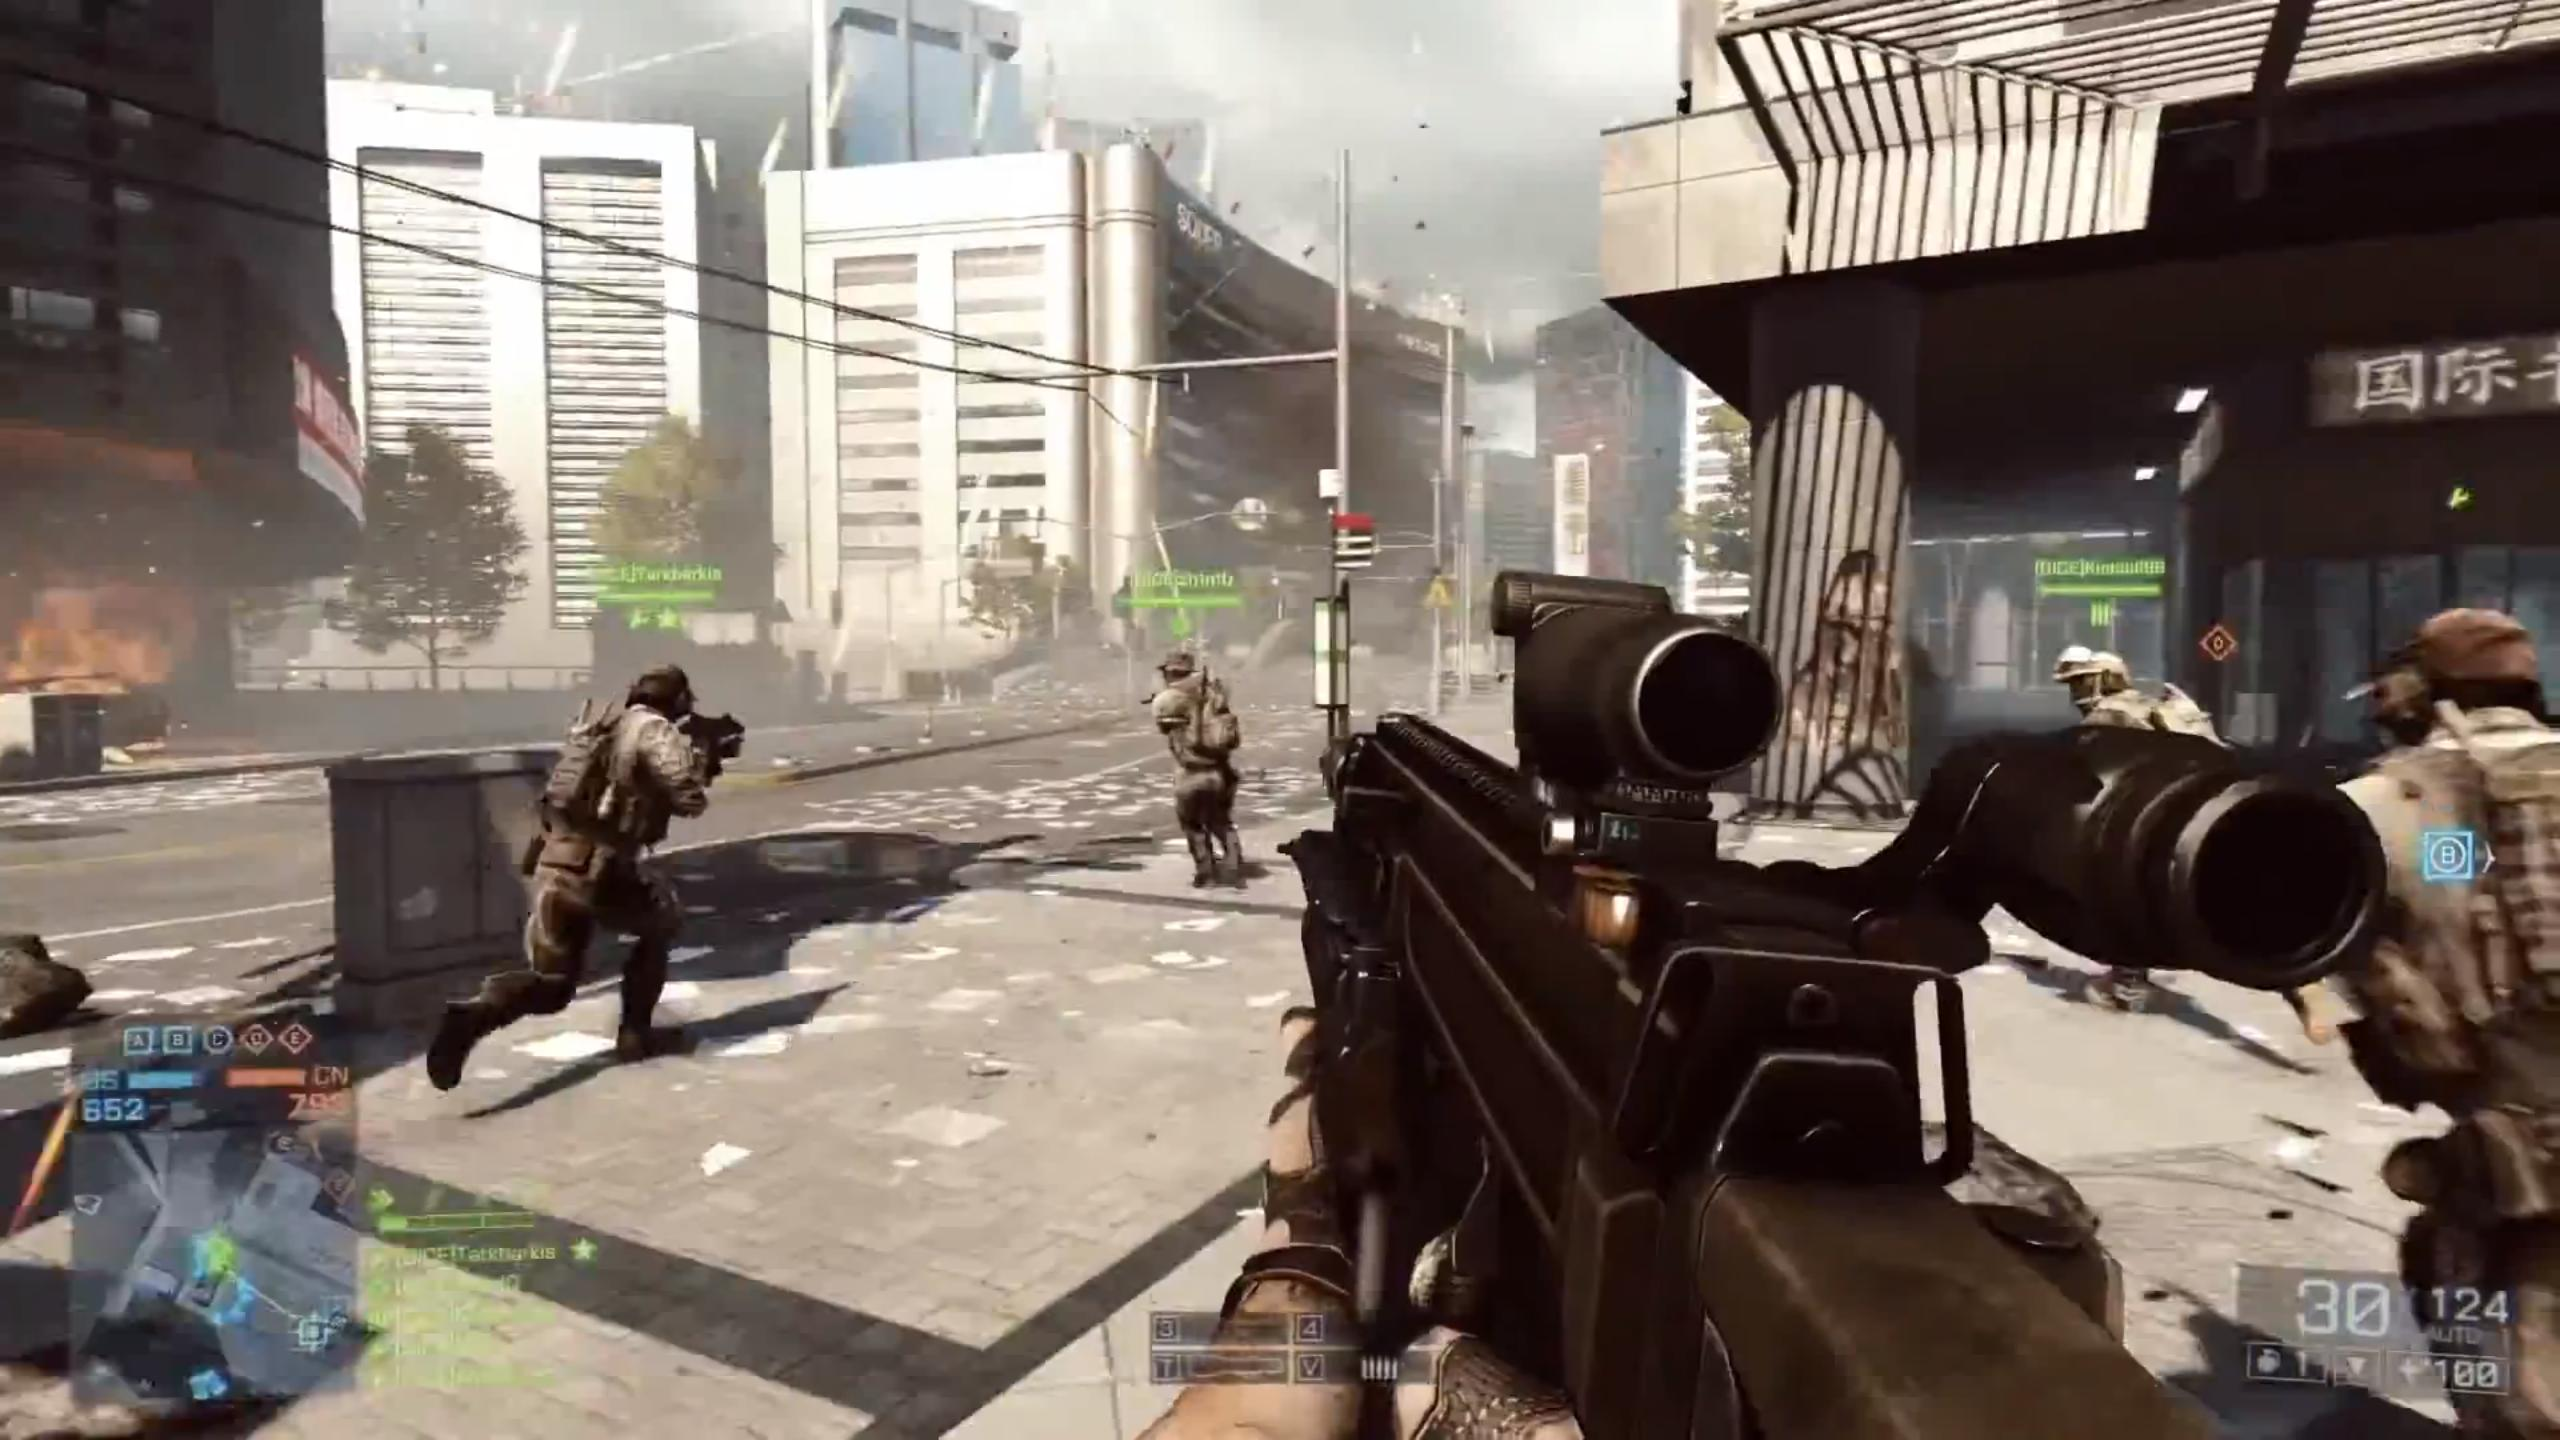 Multiplayer Games For Ps4 : Battlefield multiplayer trailer shows new maps intense